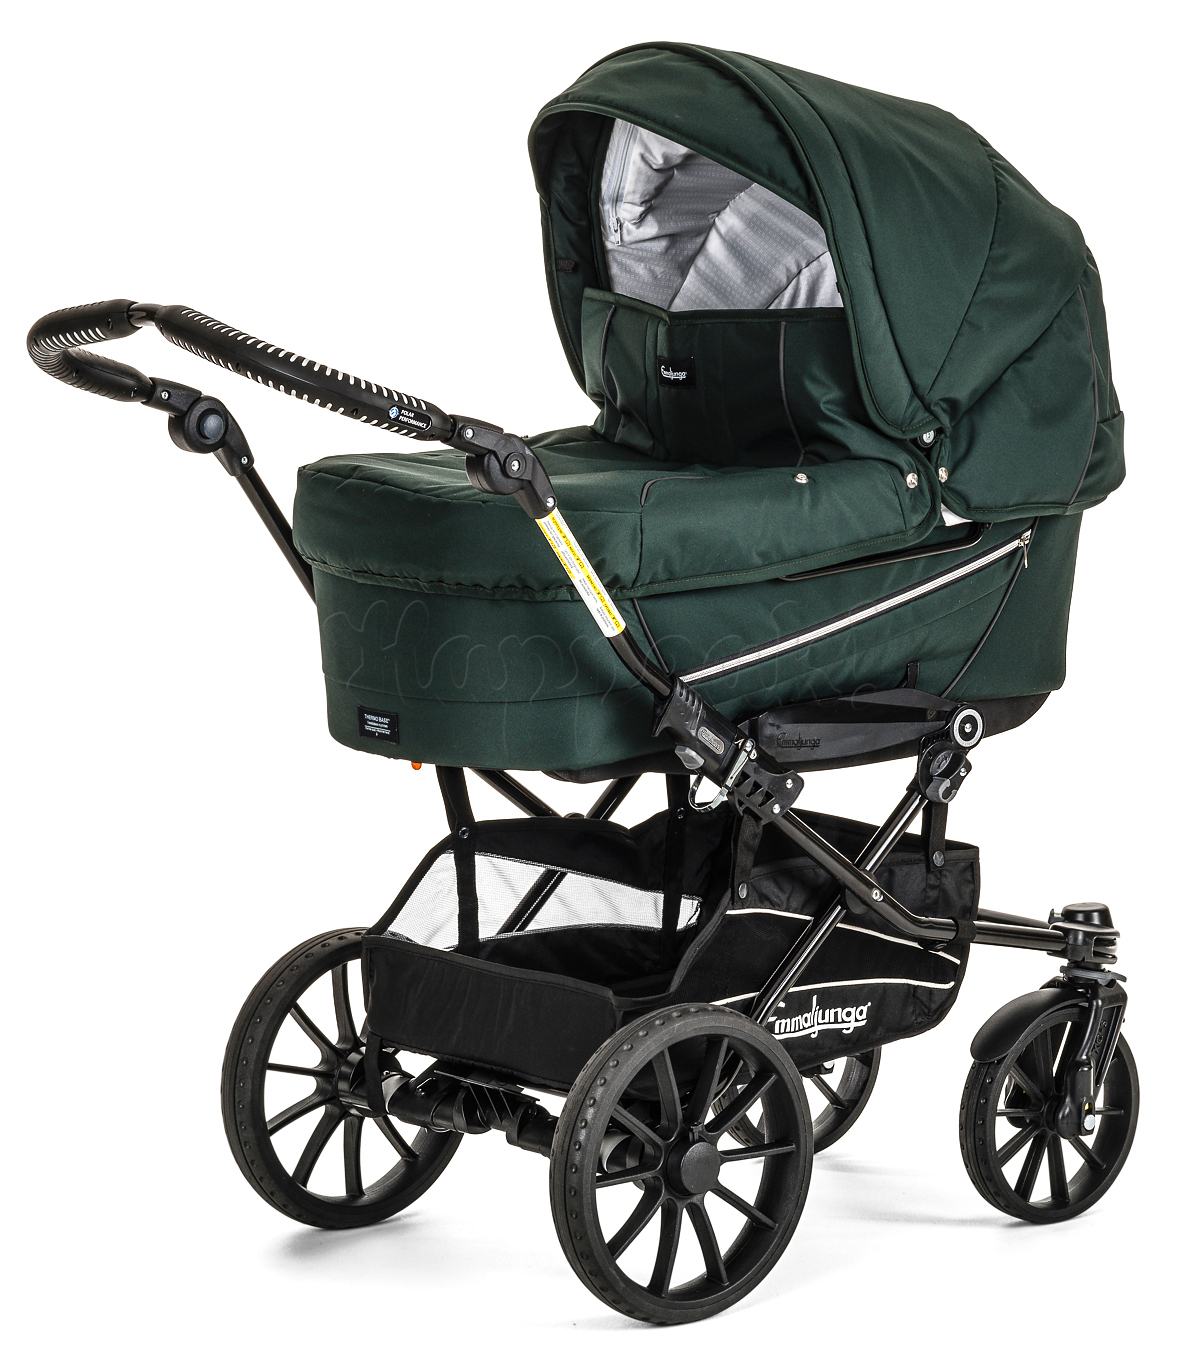 Коляска EMMALJUNGA EDGE DUO COMBI 12605 OXFORD GREEN 2016 2 В 1 на шасси CITY CRYPTONITE